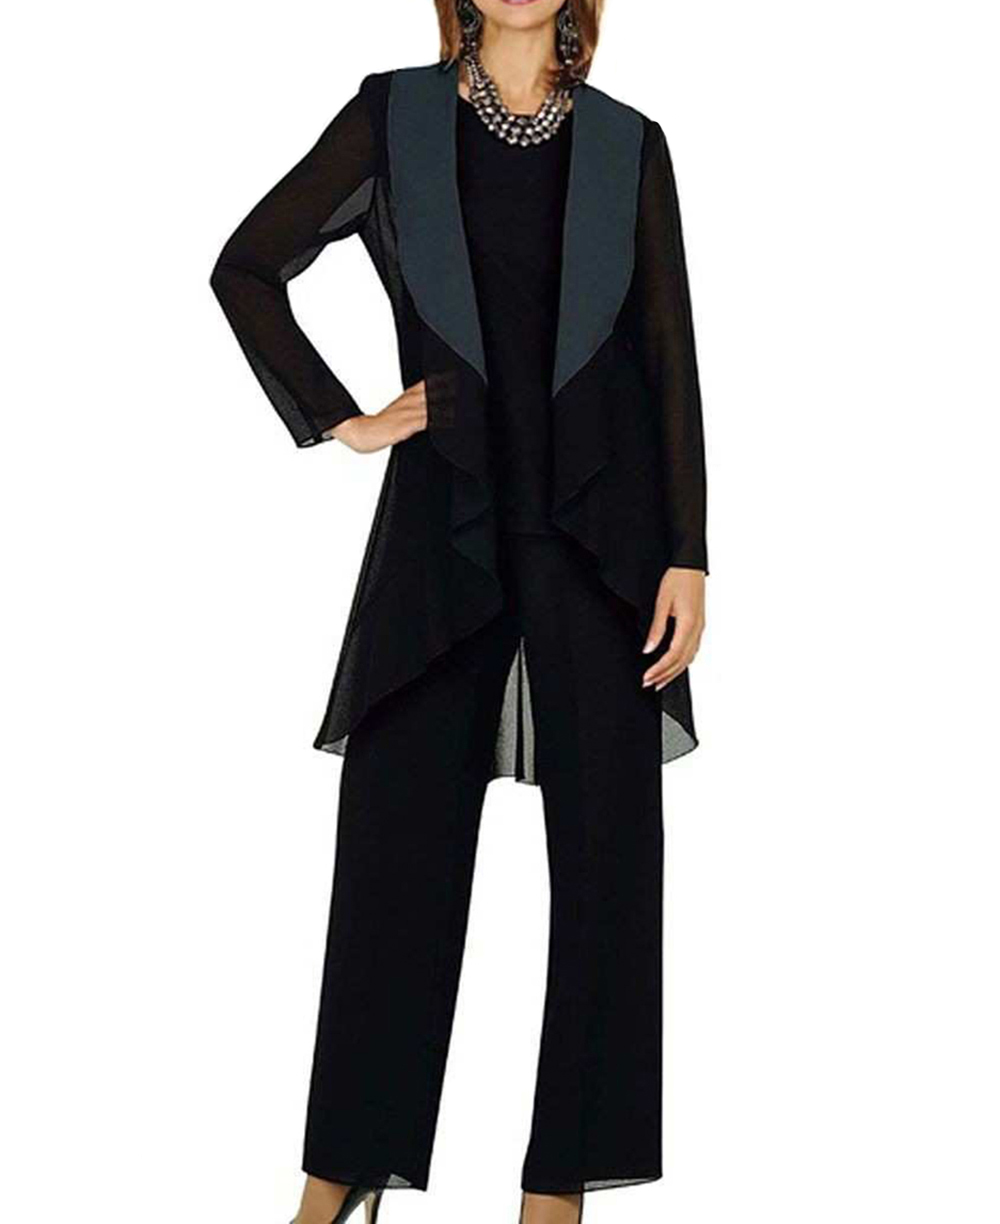 Women 3 Pieces Draped Shawl Lapel Chiffon Mother Of The Bride Dress Pants Suit With Jacket Outfit Long Sleeves For Wedding 2019